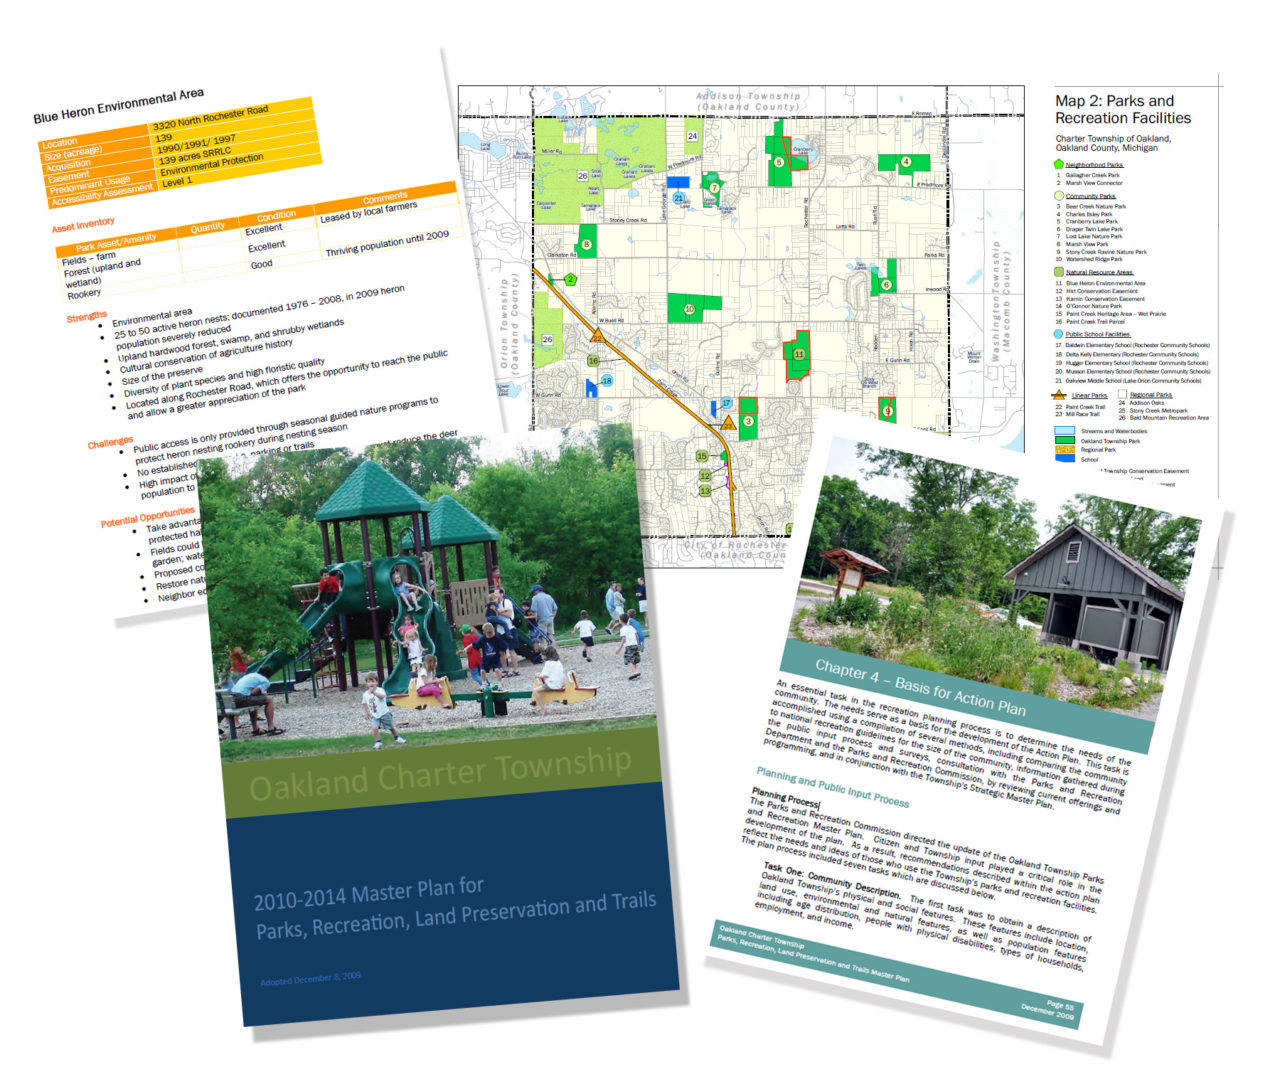 master plan for parks, recreation, open space, and trails